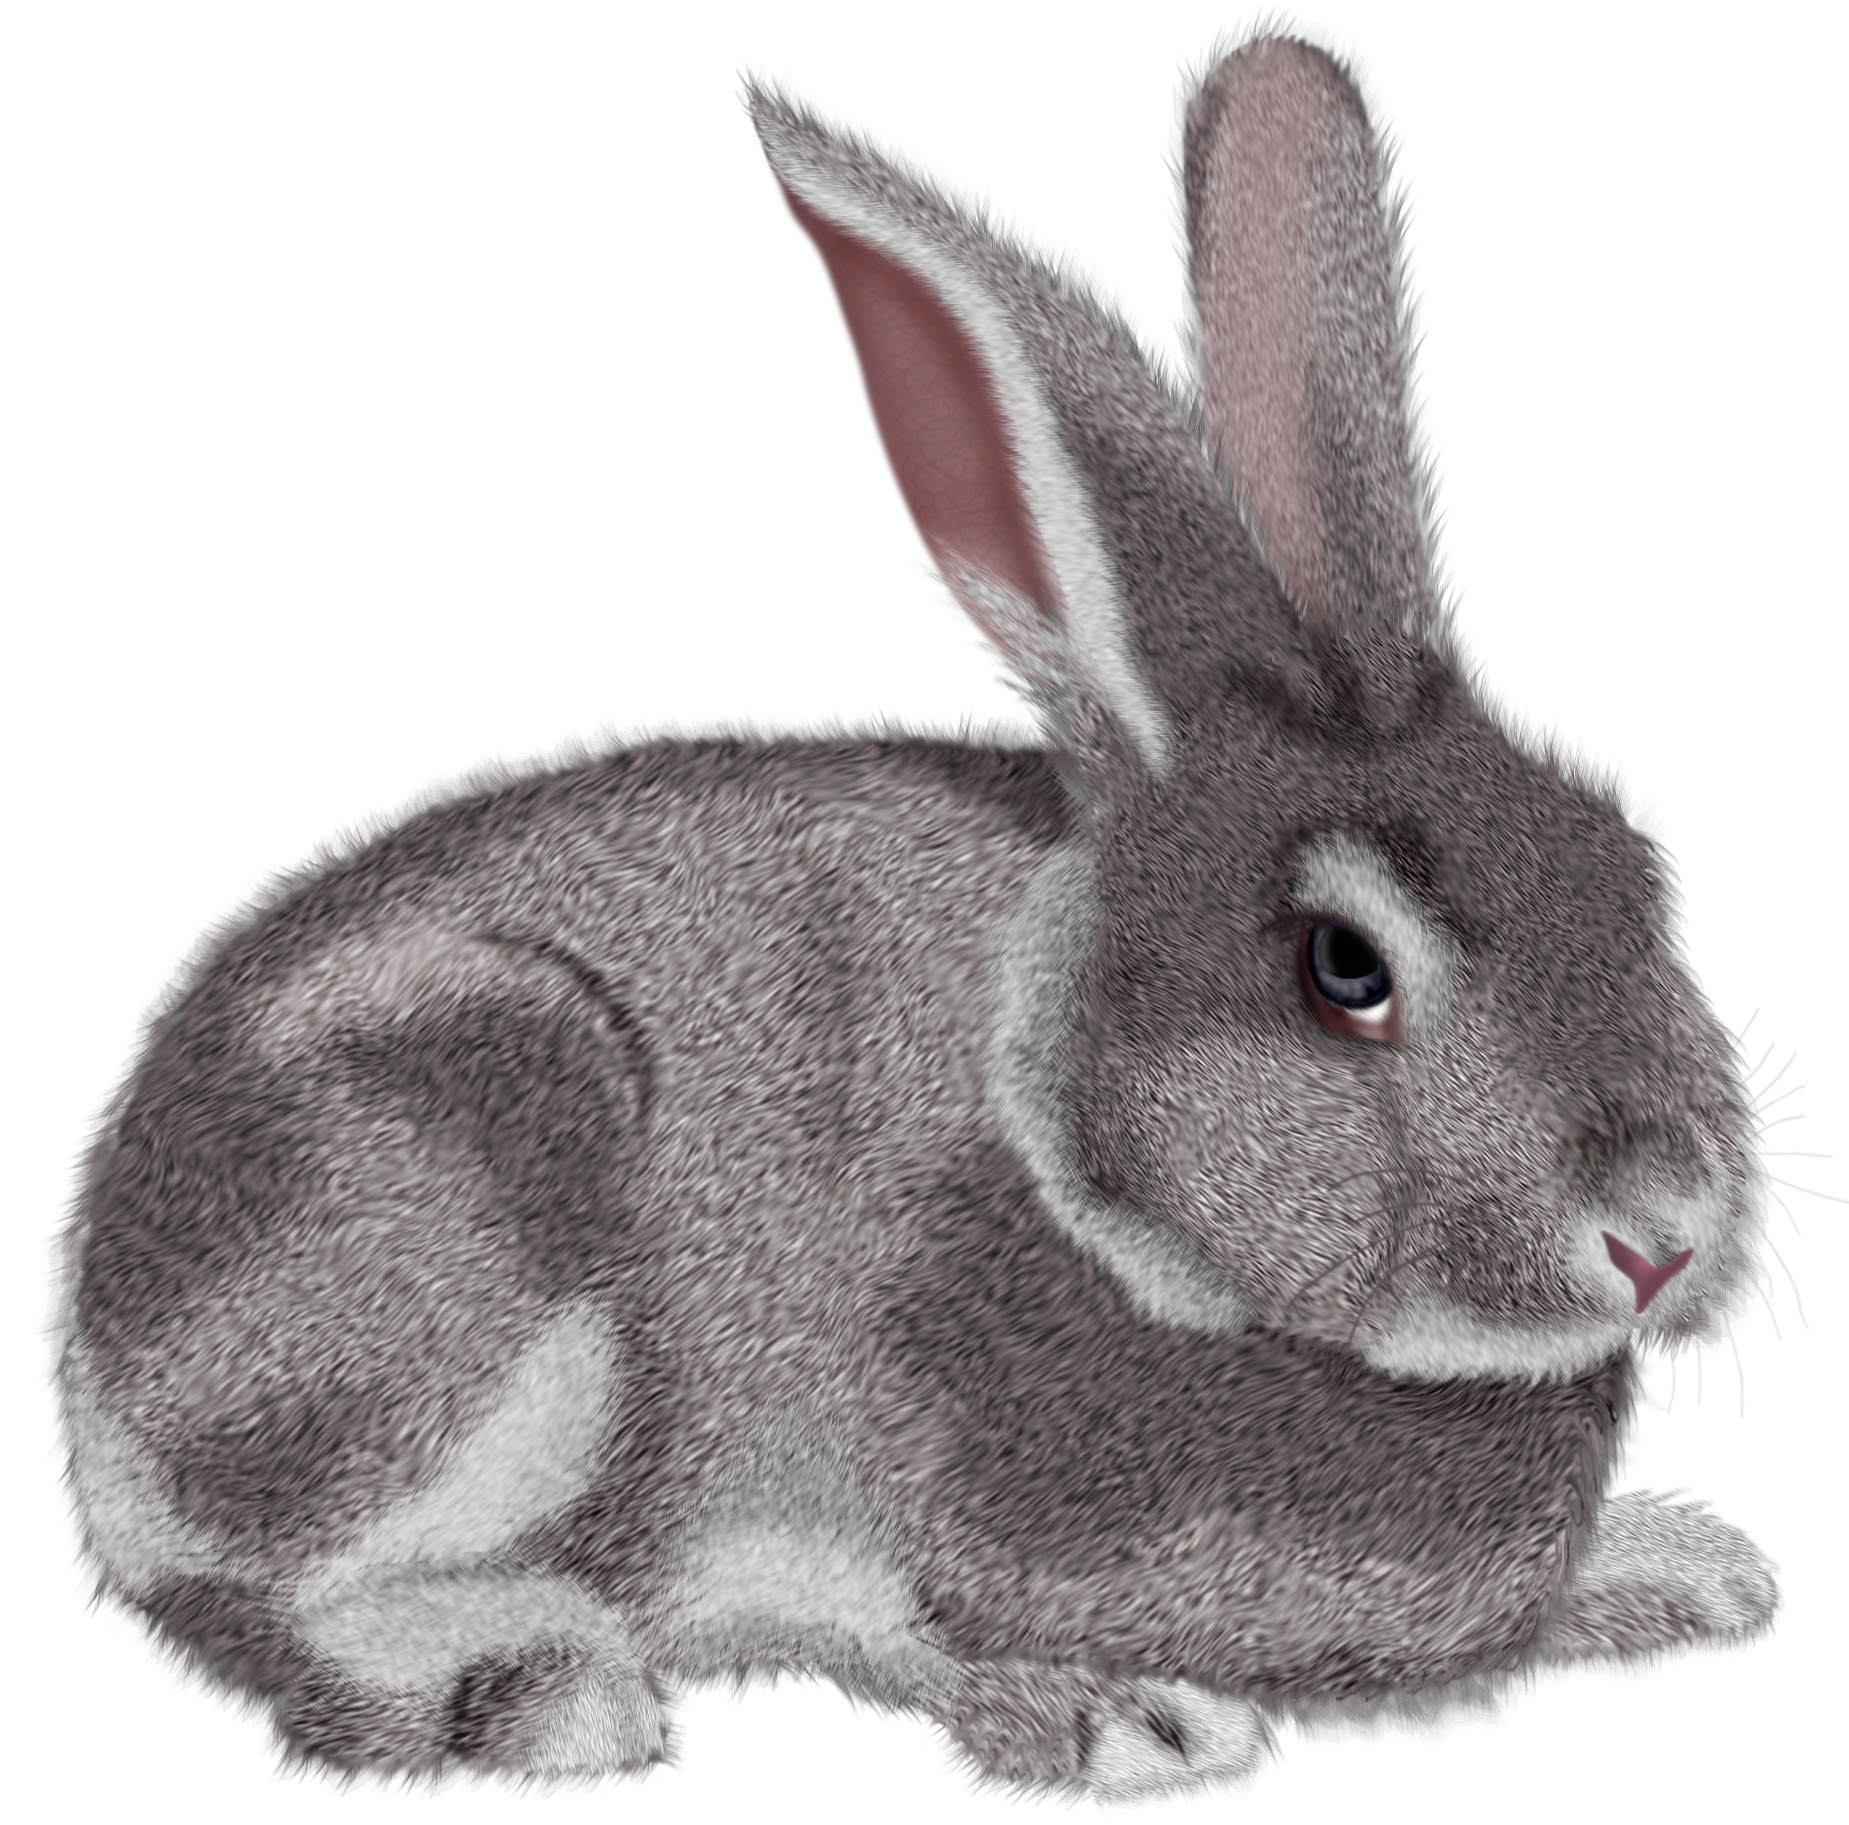 Pets clipart bunny. Grey rabbit picture cards